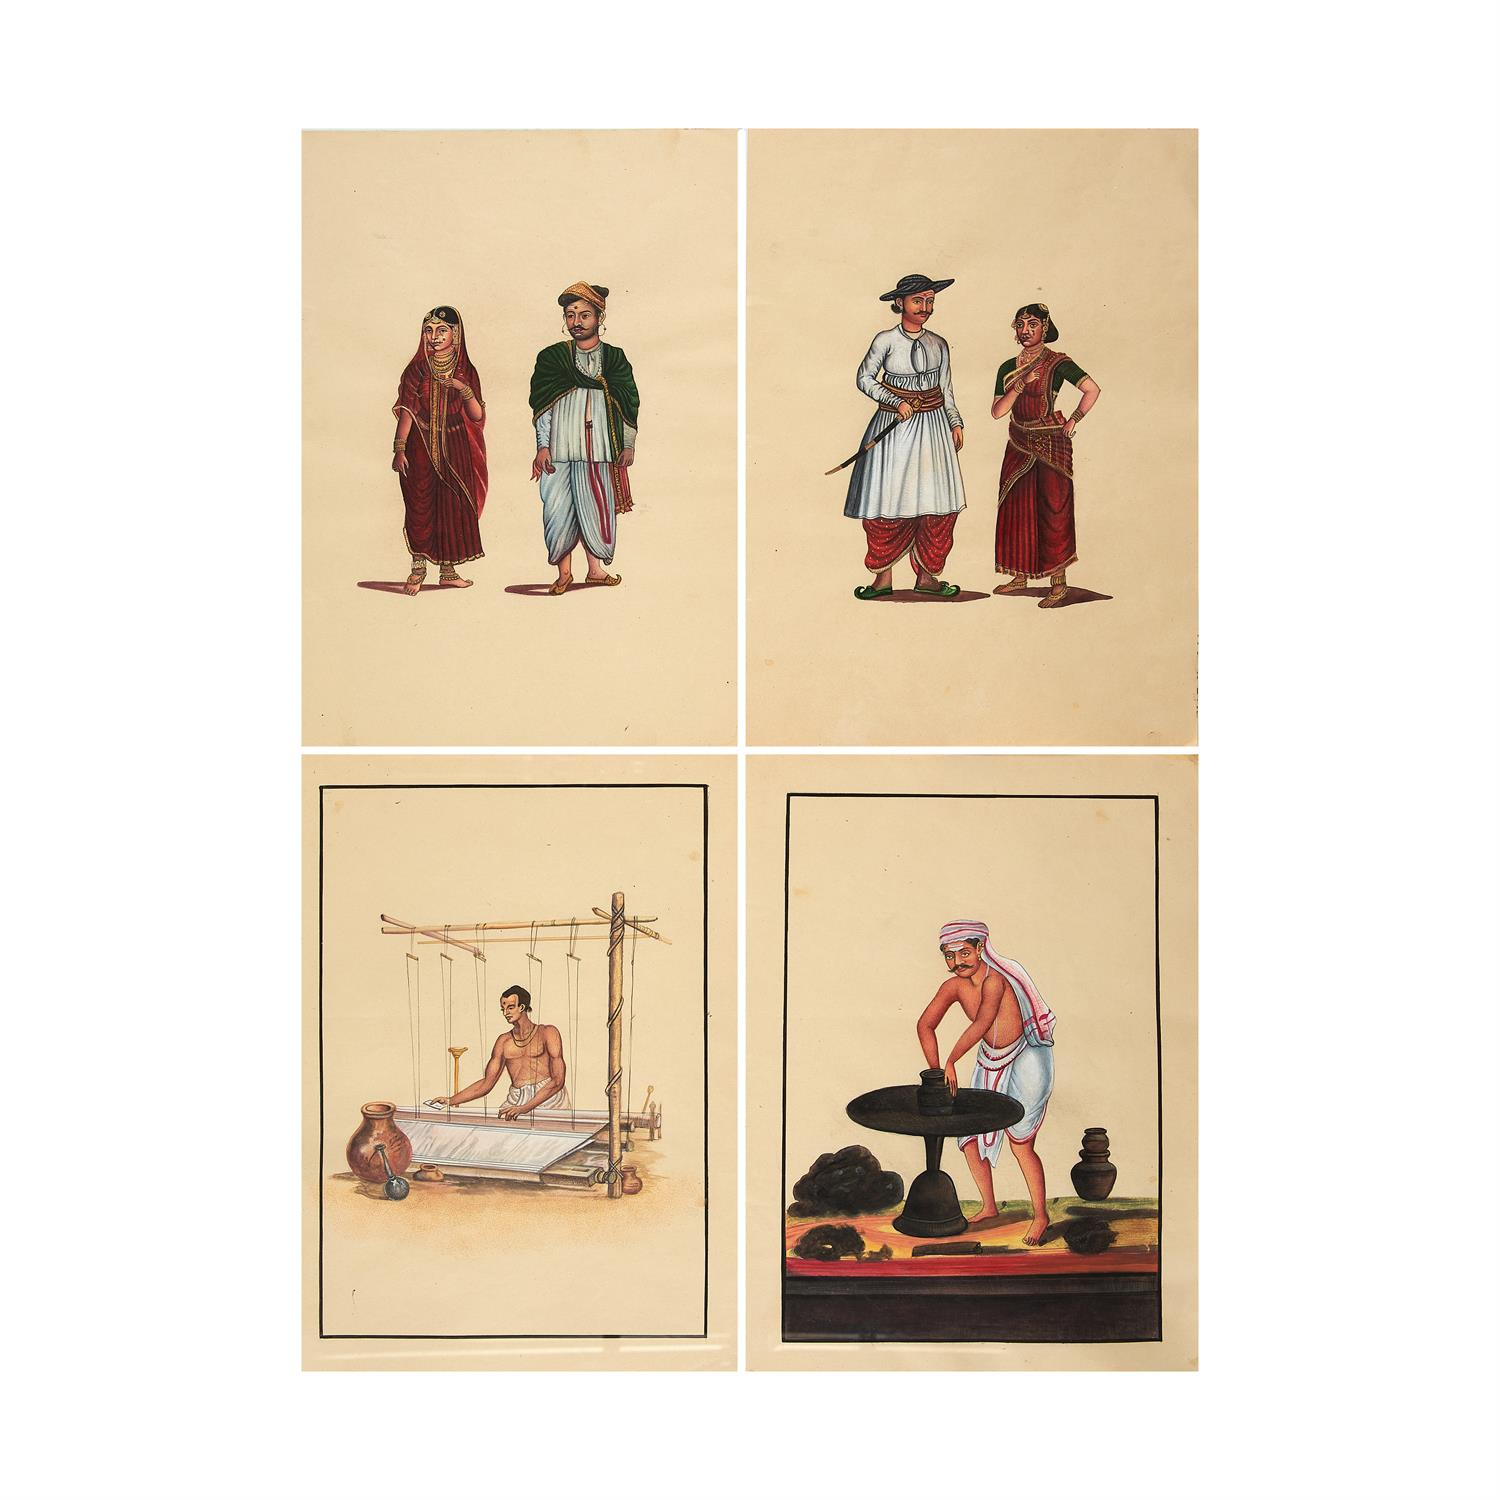 Lot 130 - Group of 12 Company School illustrations, on paper [India, early twentieth century]